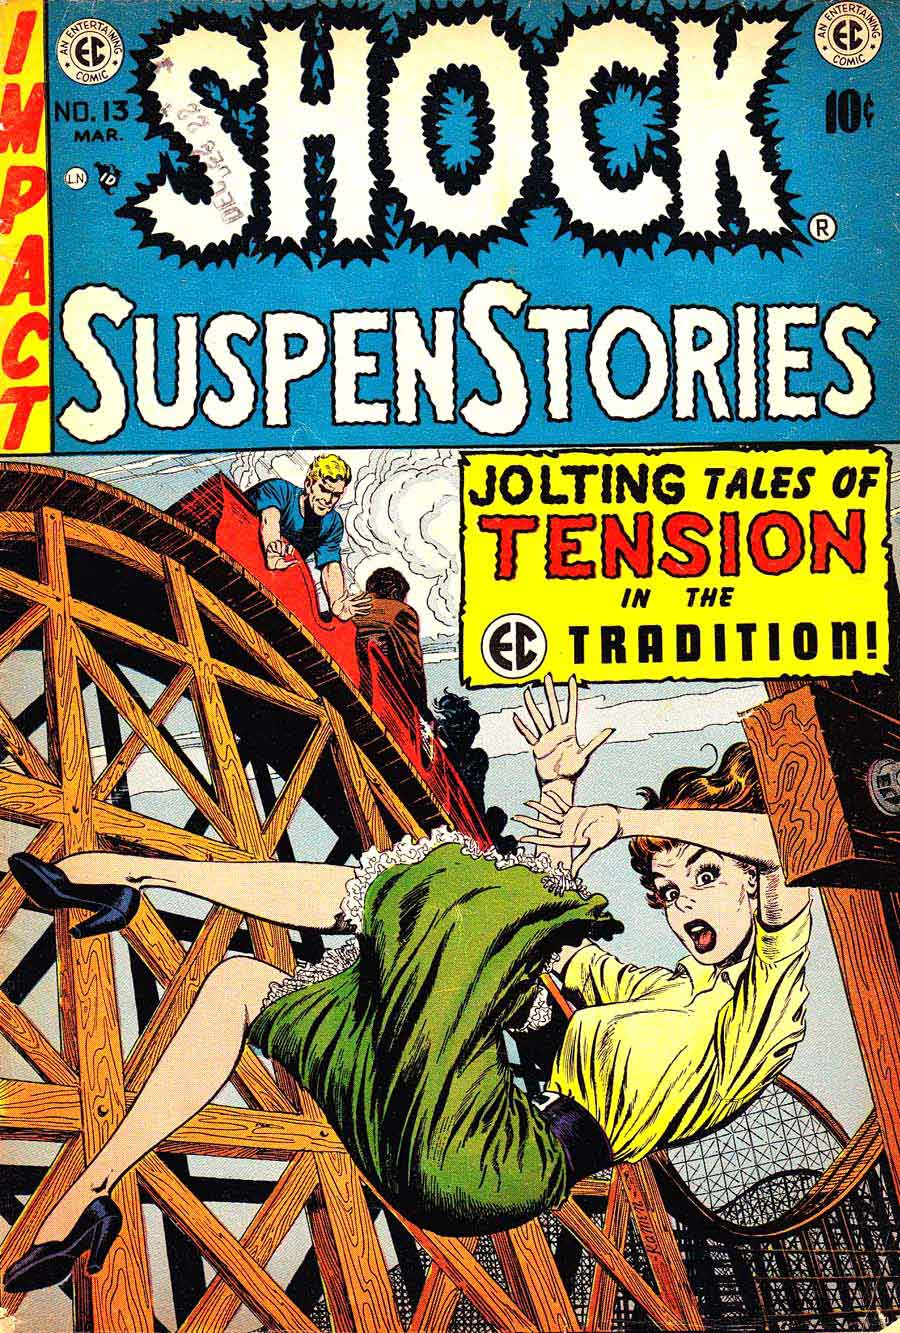 Shock Suspenstories v1 #13 comic book cover art by Jack Kamen